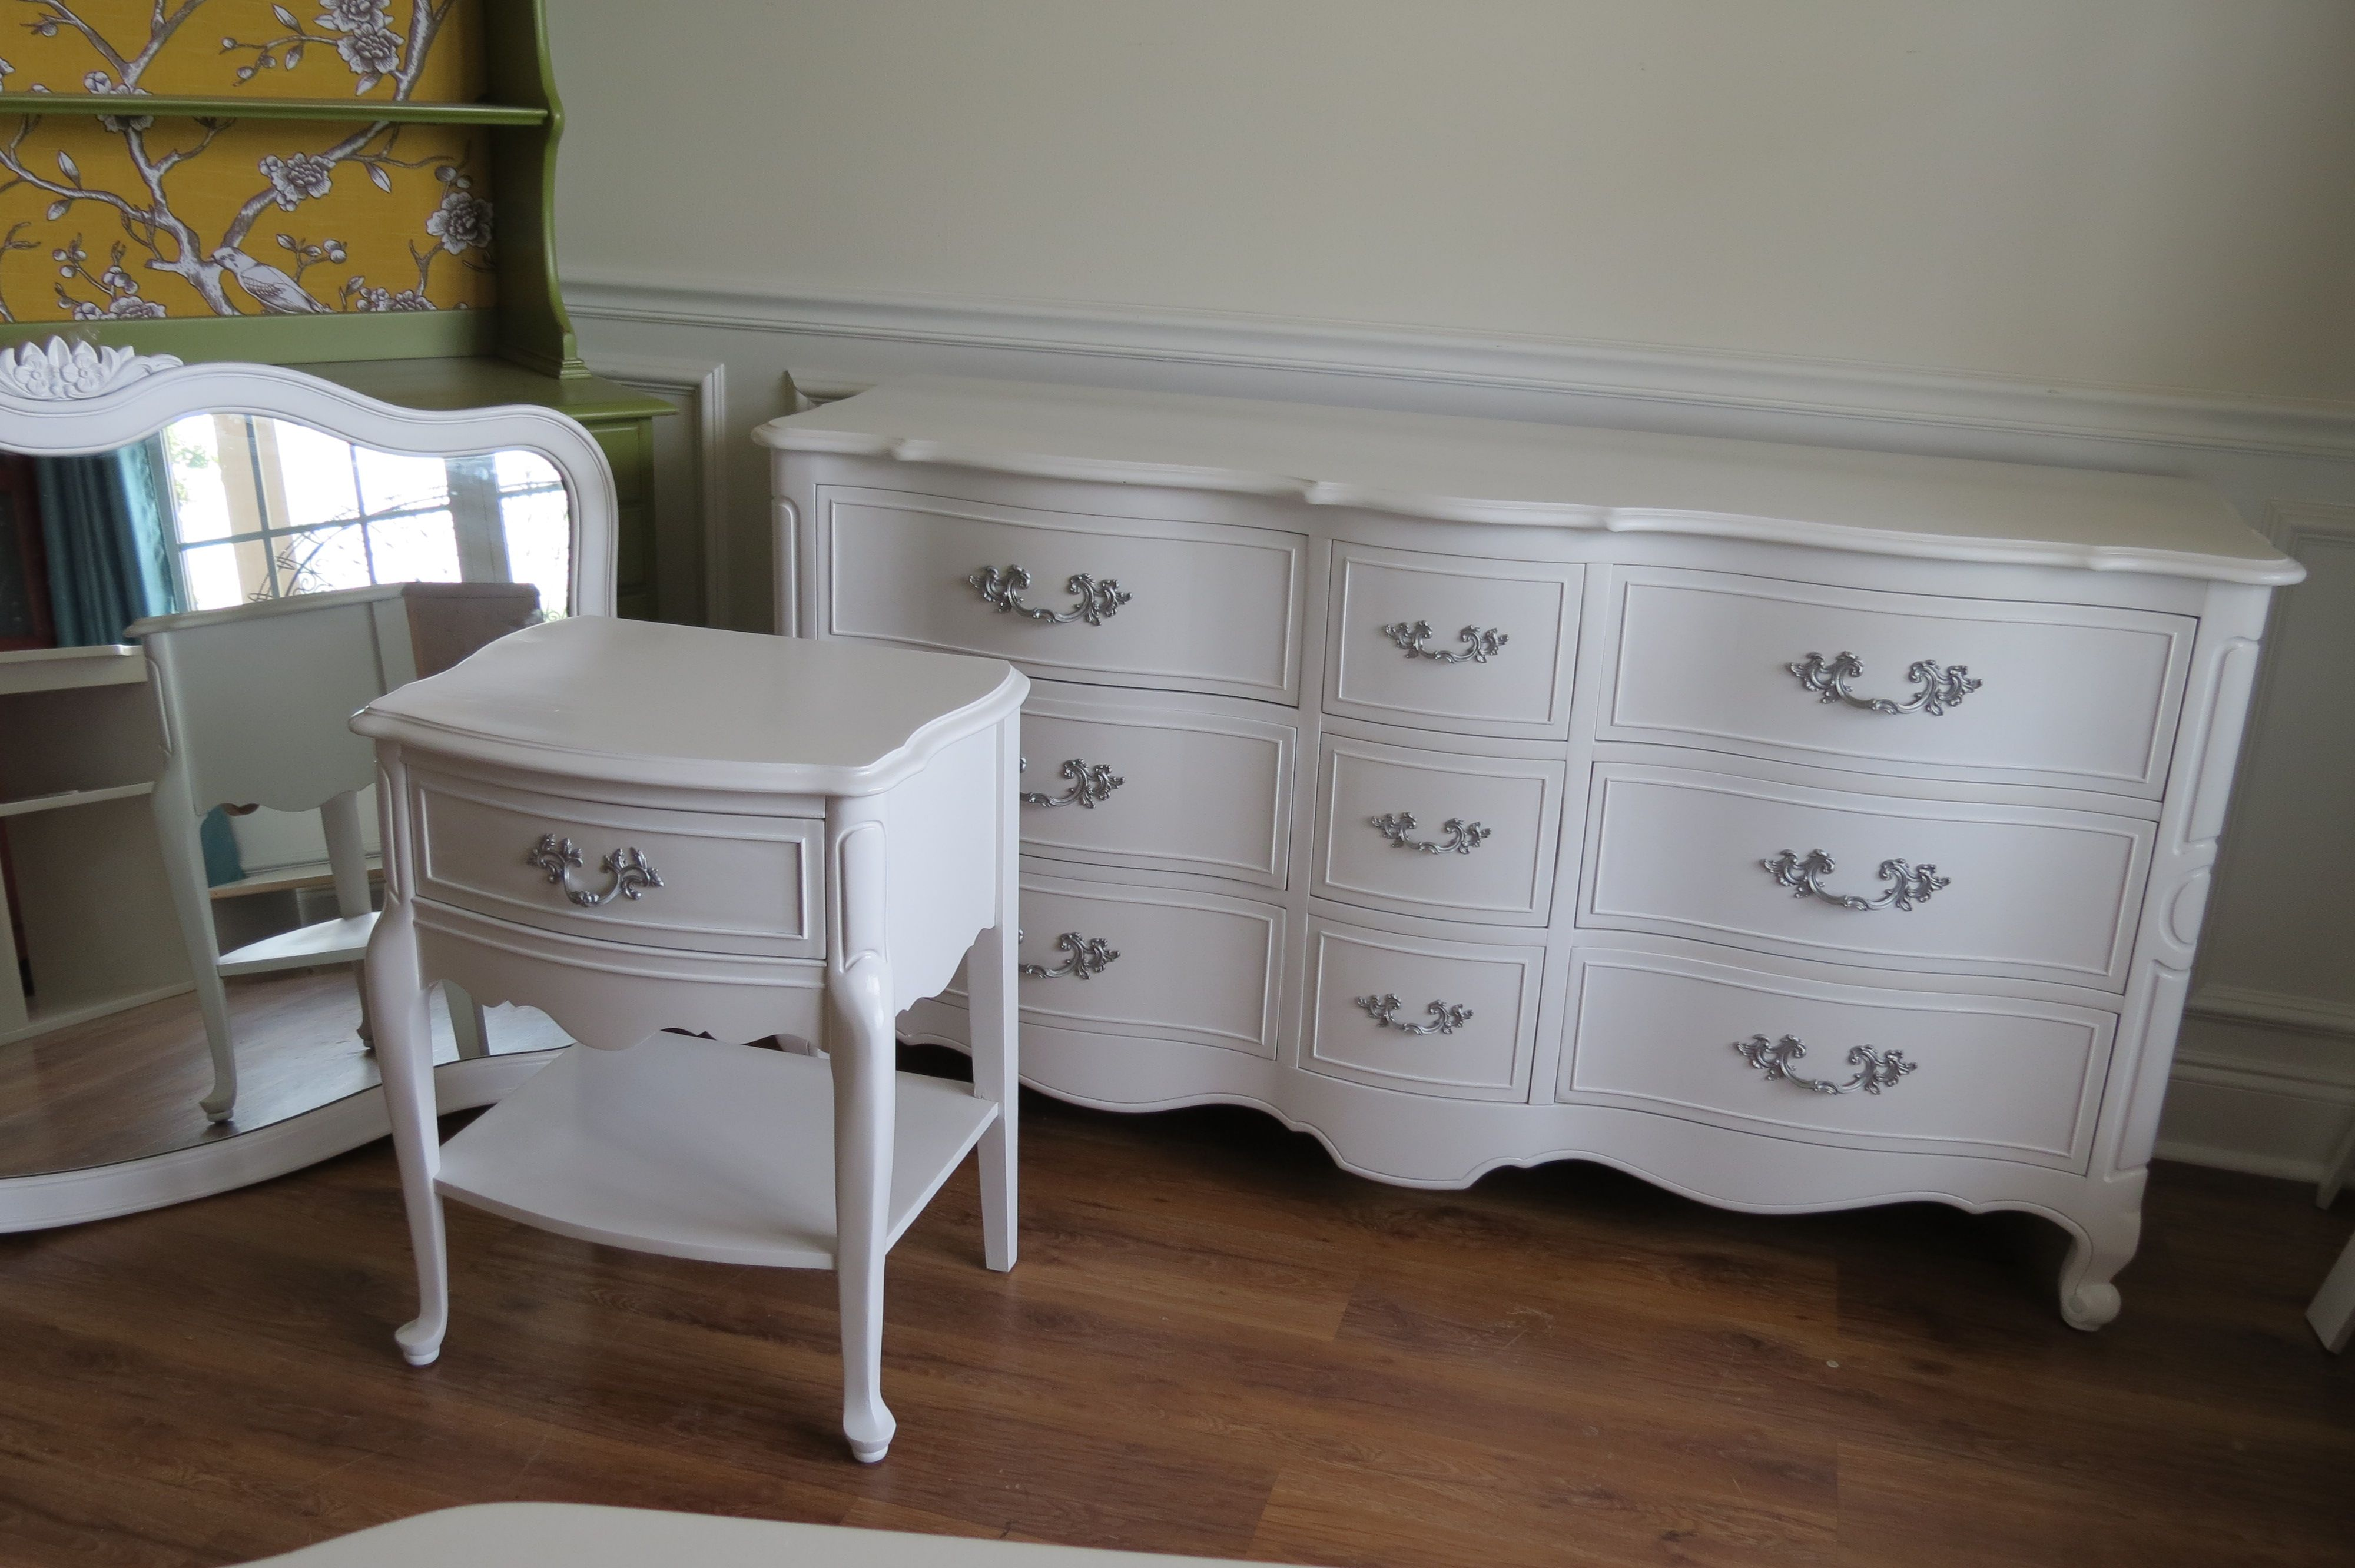 Painted french provincial classic white decora - Butacas pequenas y comodas ...